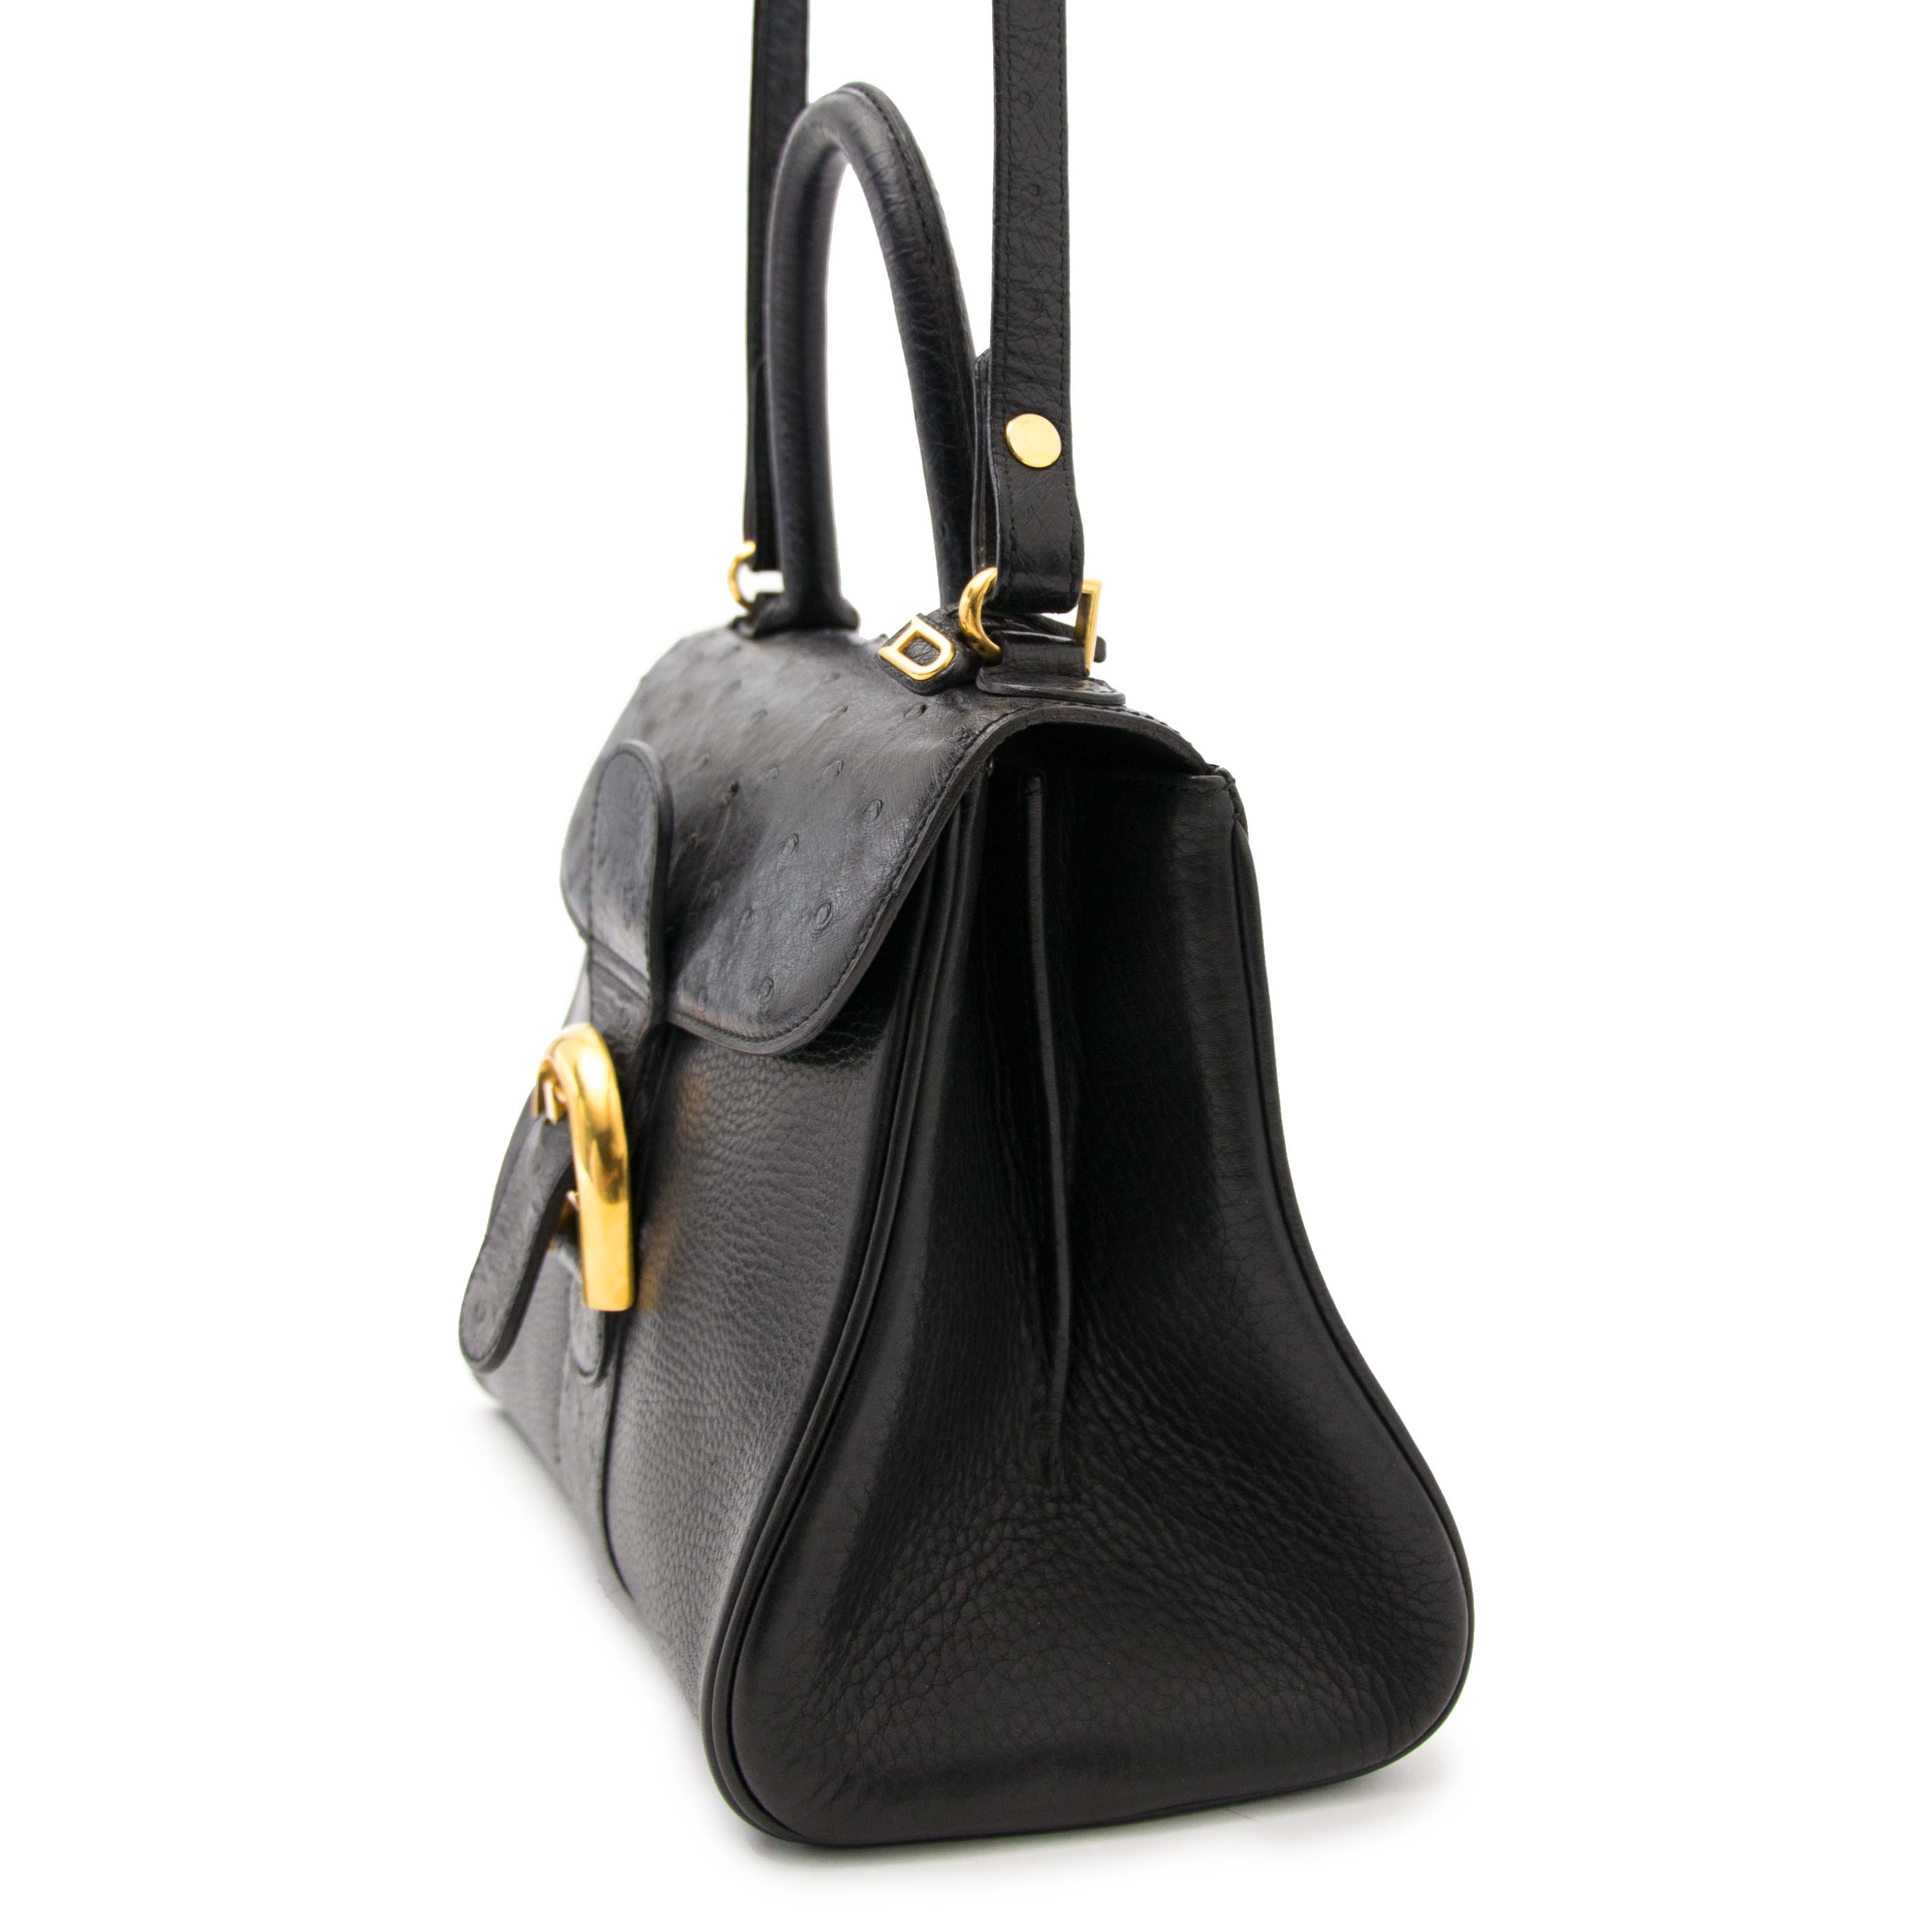 094defef4889 ... Buy safe and secure online at labellov.com for the best price Delvaux  Brillant PM